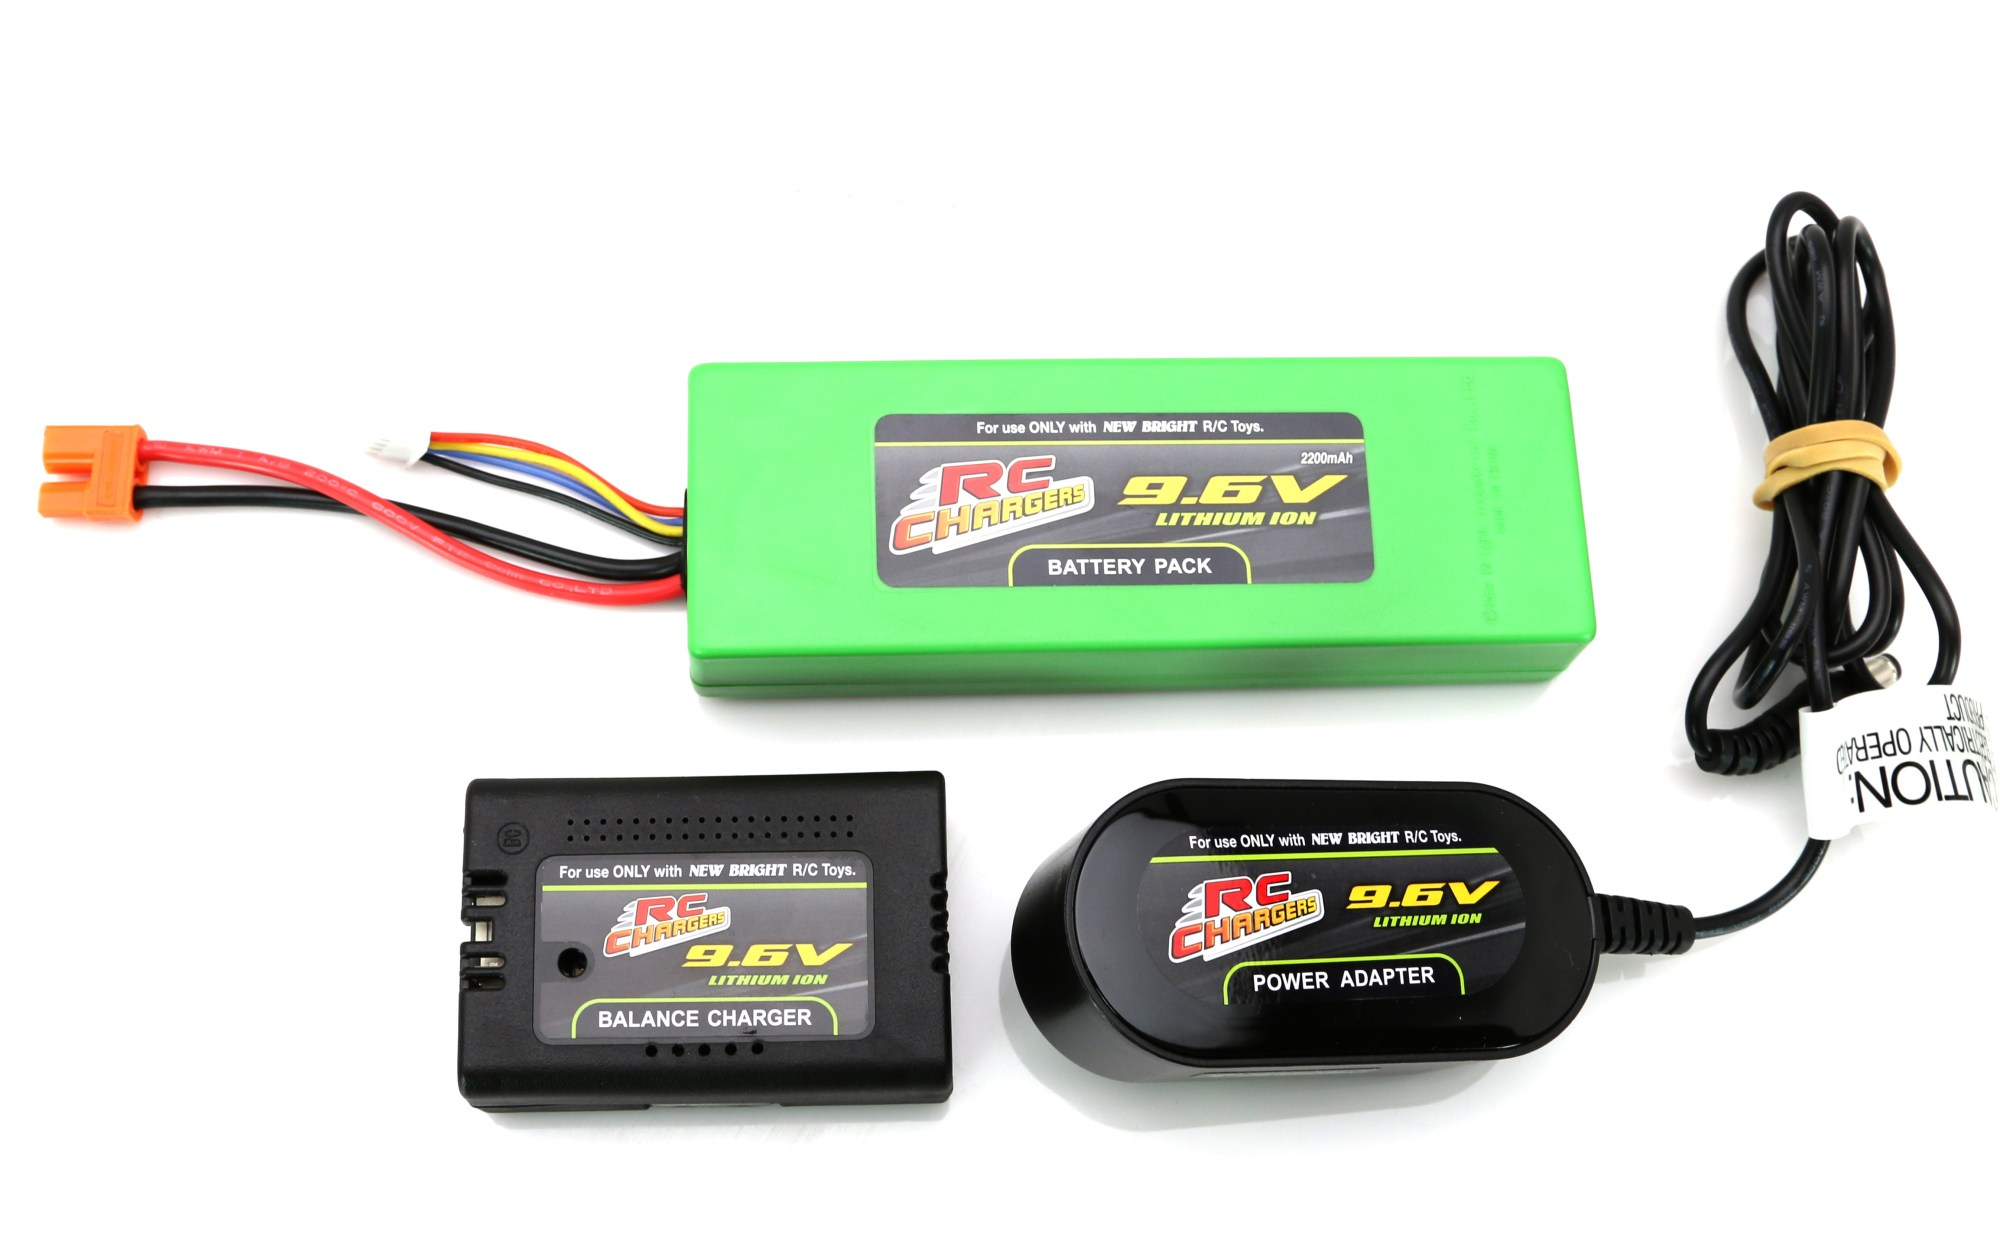 hight resolution of 9 6v replacement battery balance charger offical new bright